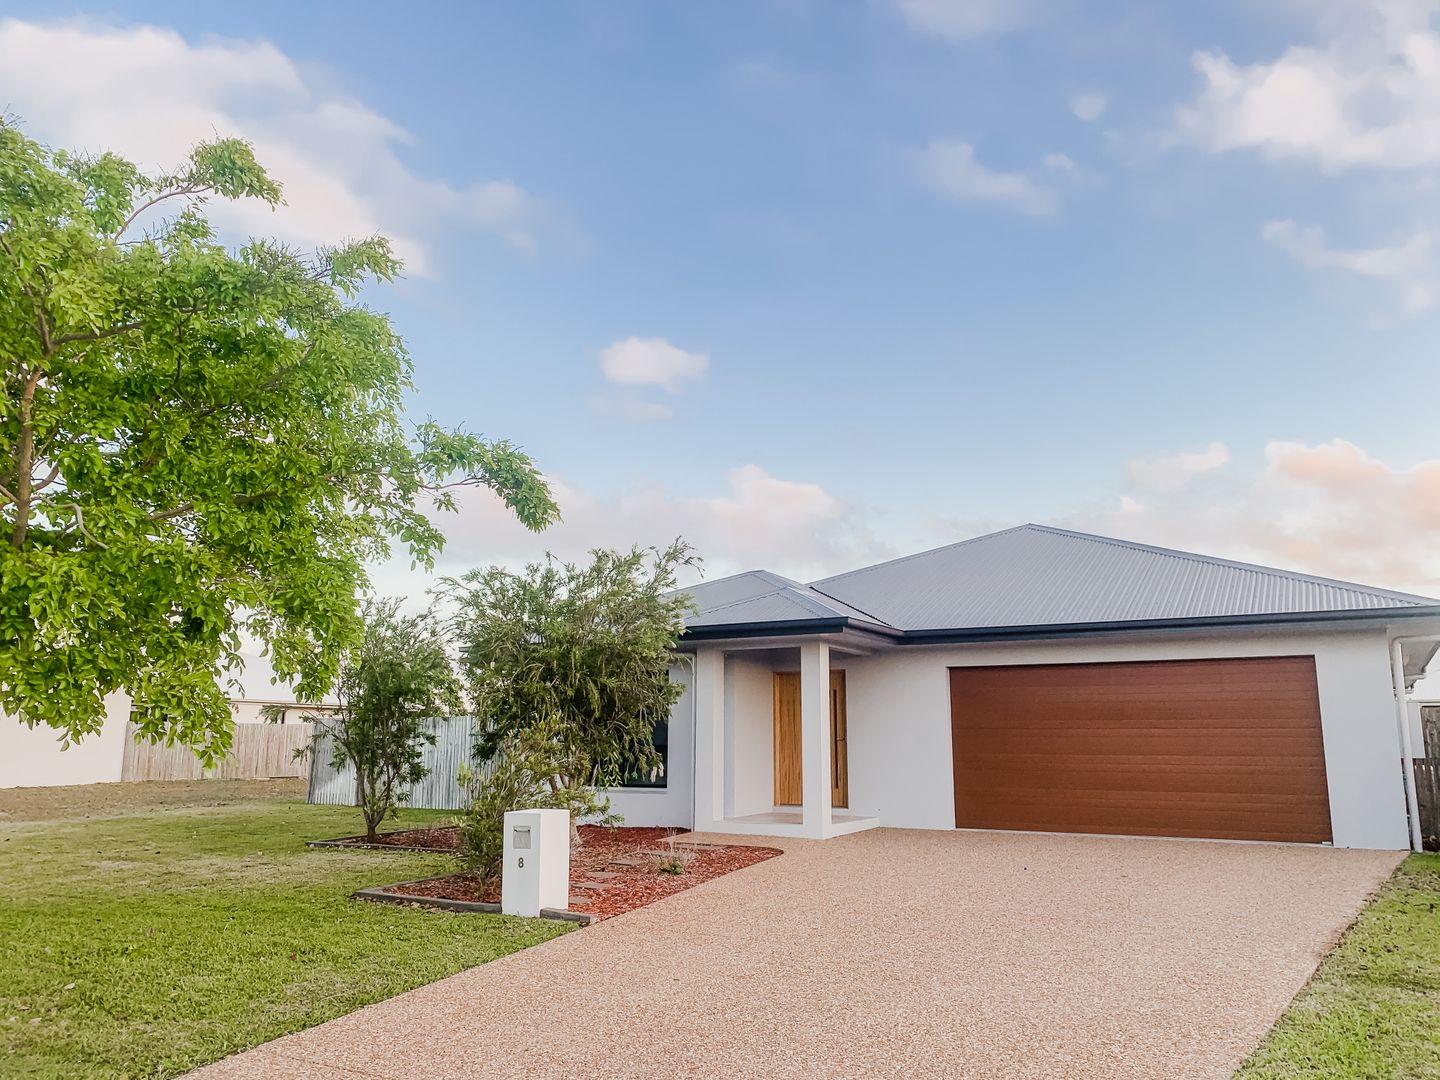 8 Speargrass Parade, Mount Low QLD 4818, Image 0